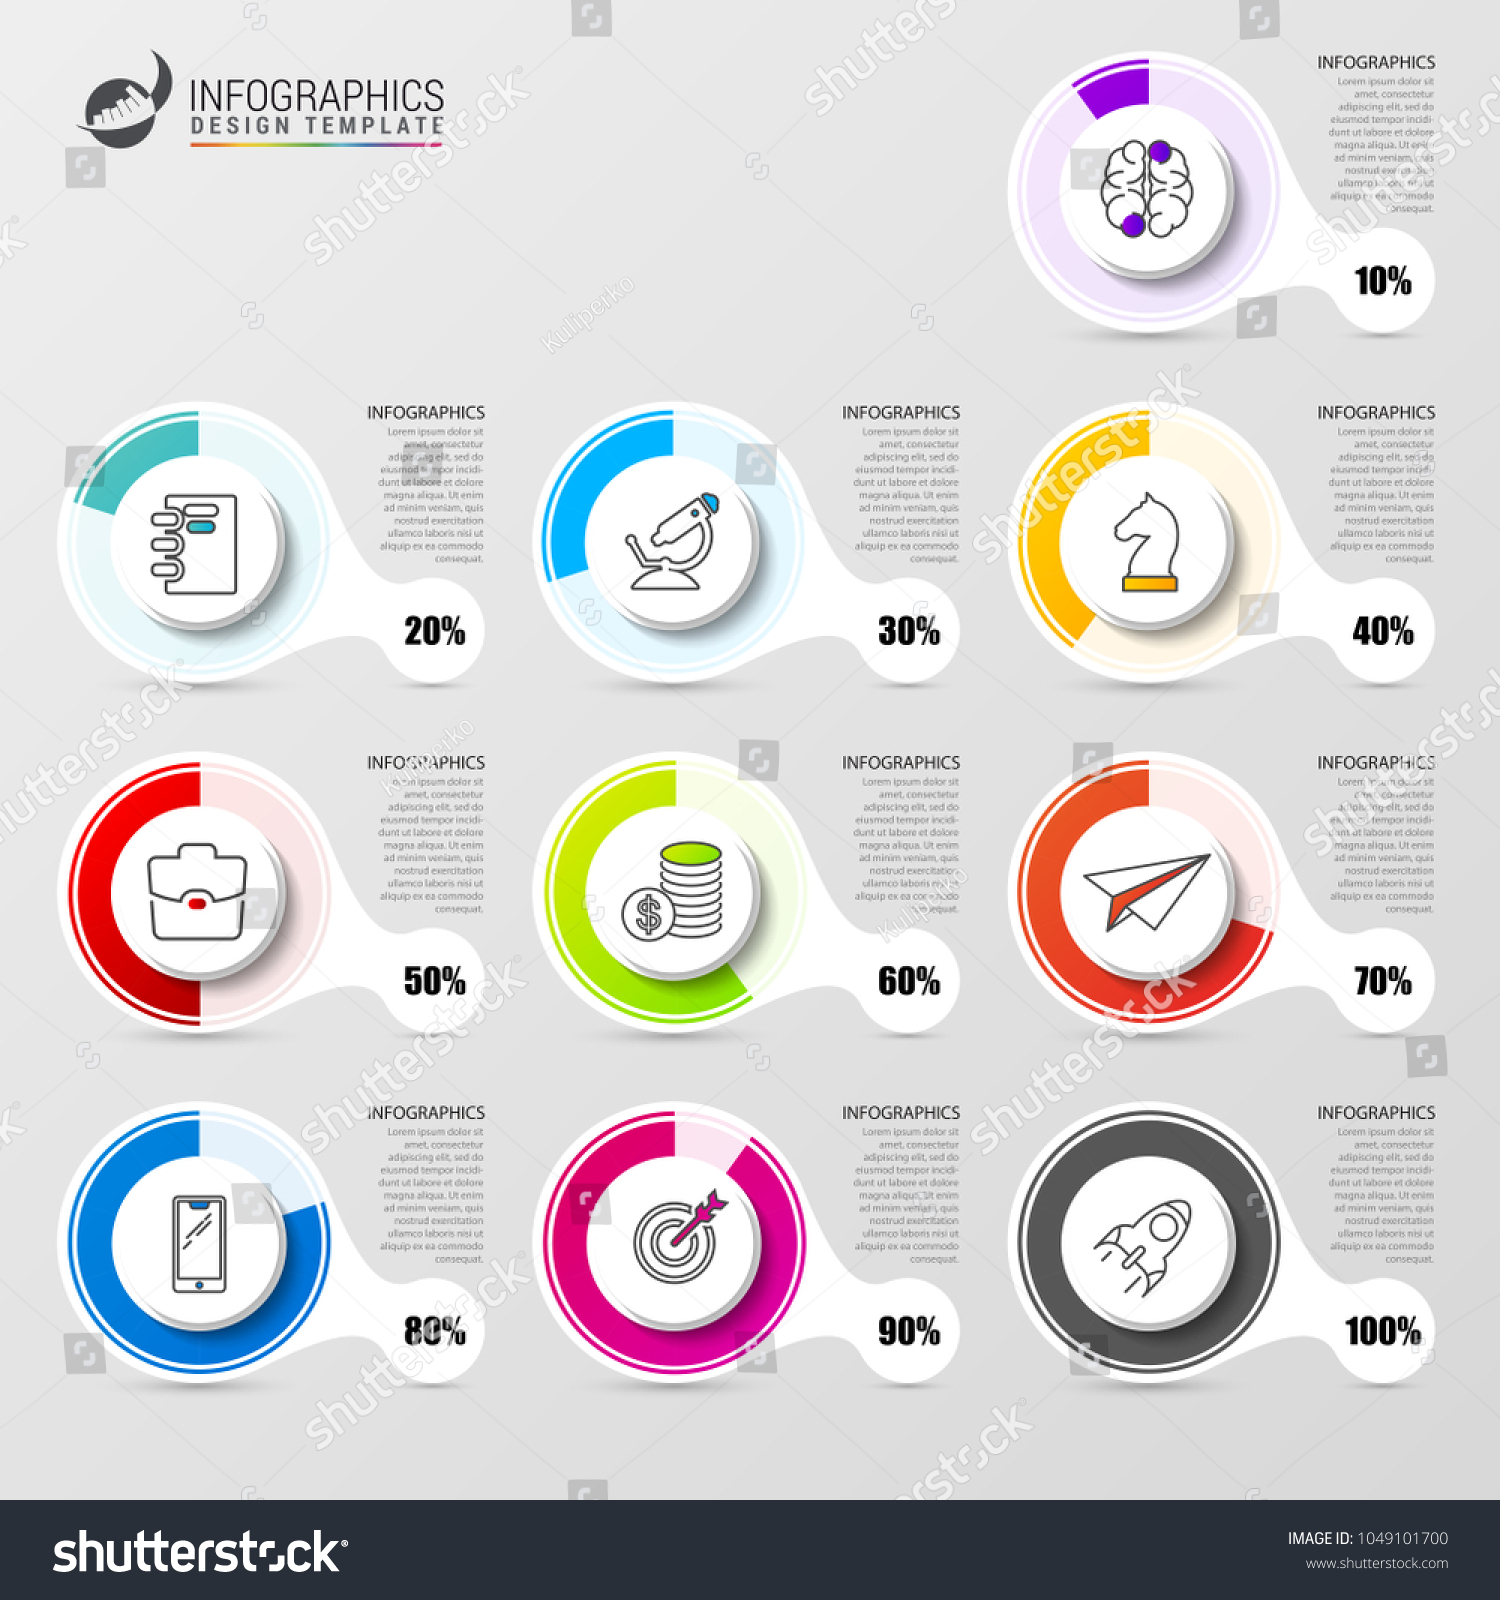 Percentage diagram infographic design template icons stock vector percentage diagram infographic design template with icons vector illustration ccuart Choice Image